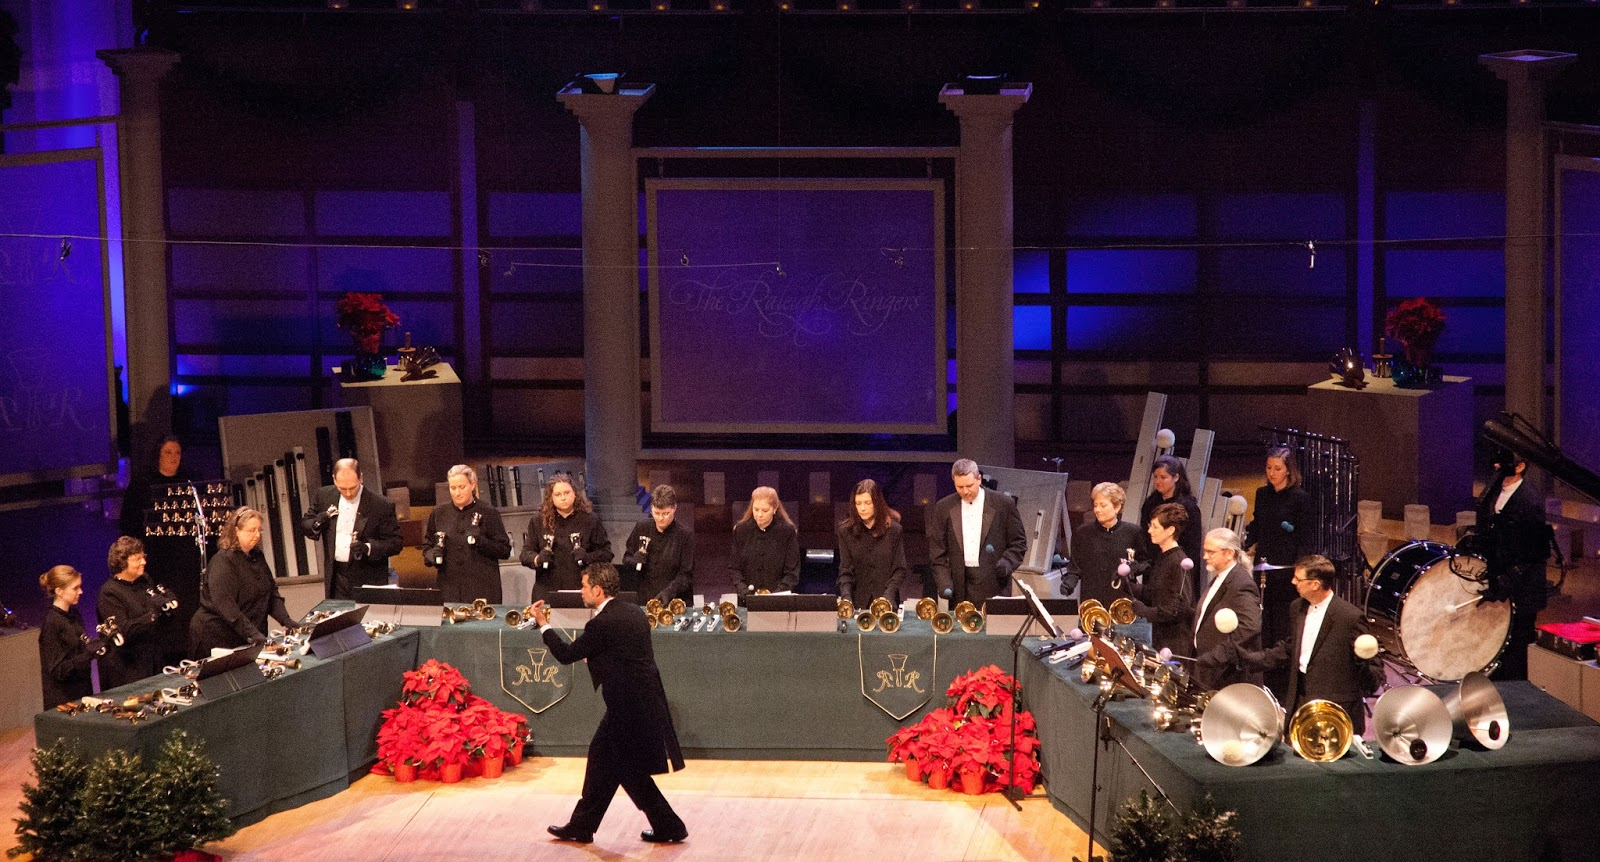 The Raleigh Ringers will perform on Dec. 9-10. Photo c/o Raleigh Ringers.